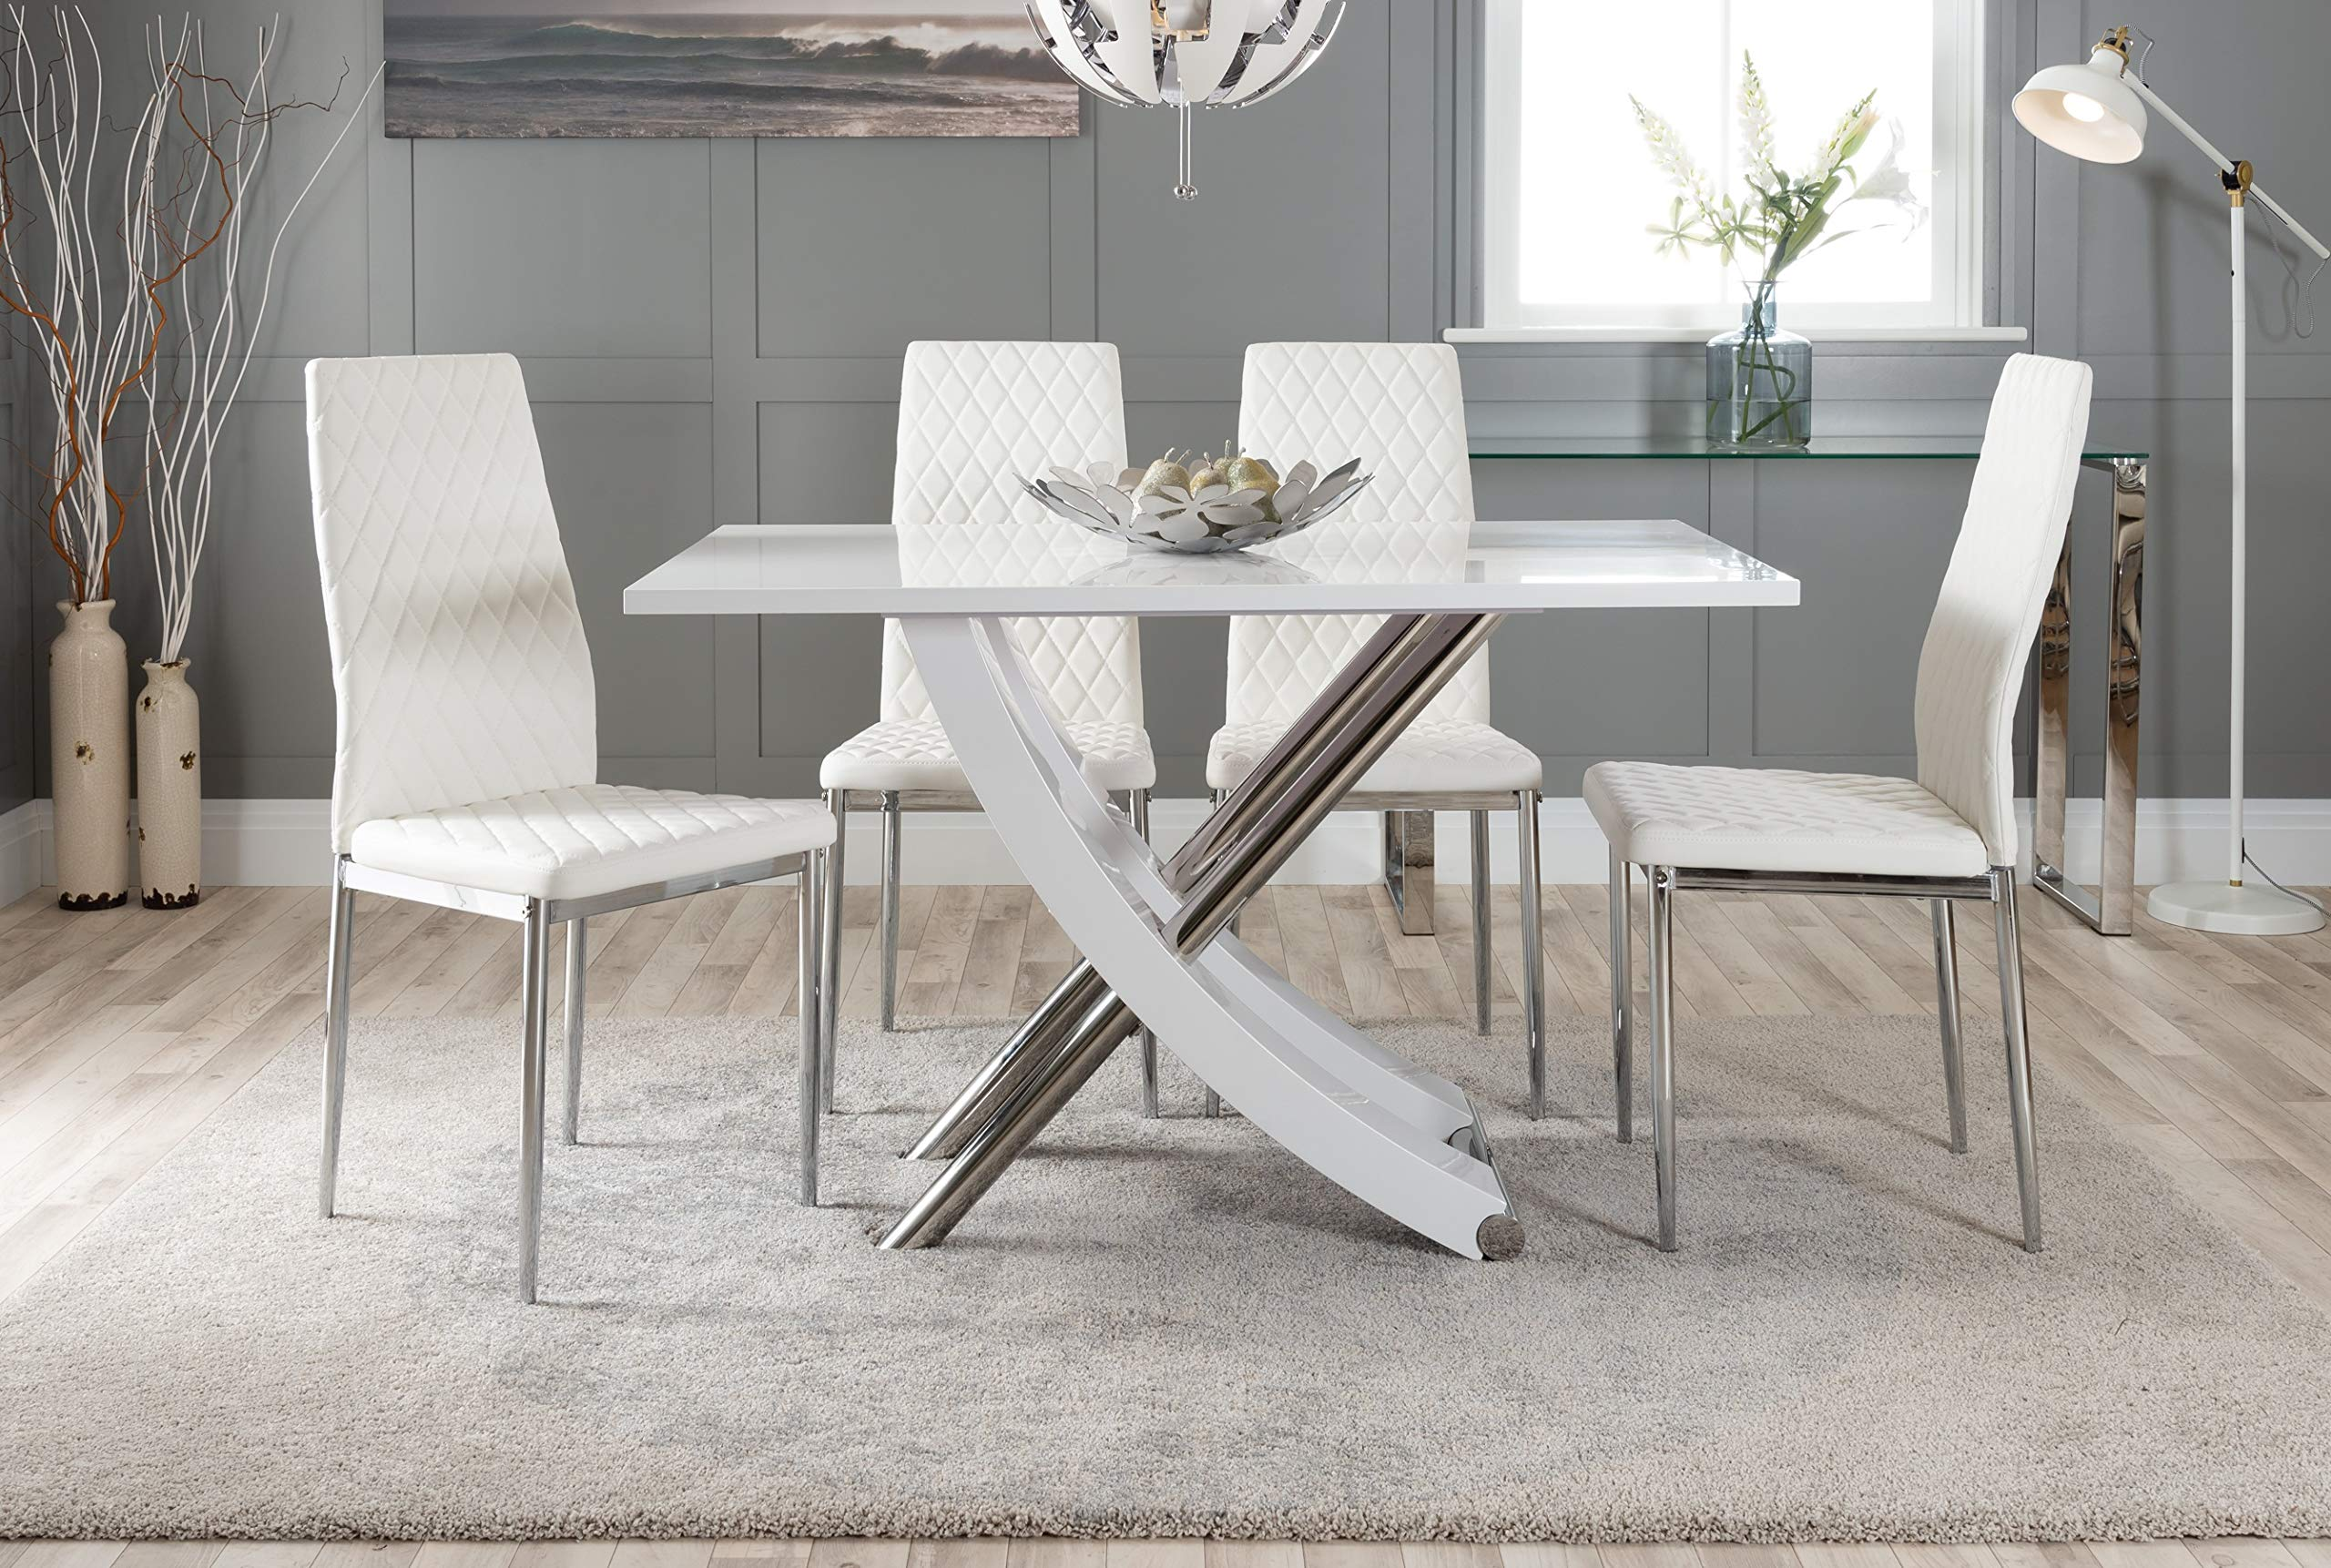 Furniturebox Uk Mayfair 4 Modern White High Gloss Stainless Steel Metal Dining Table And 4 Stylish Milan Dining Chairs Seats Set Dining Table 4 White Milan Chairs Amazon Co Uk Kitchen Home